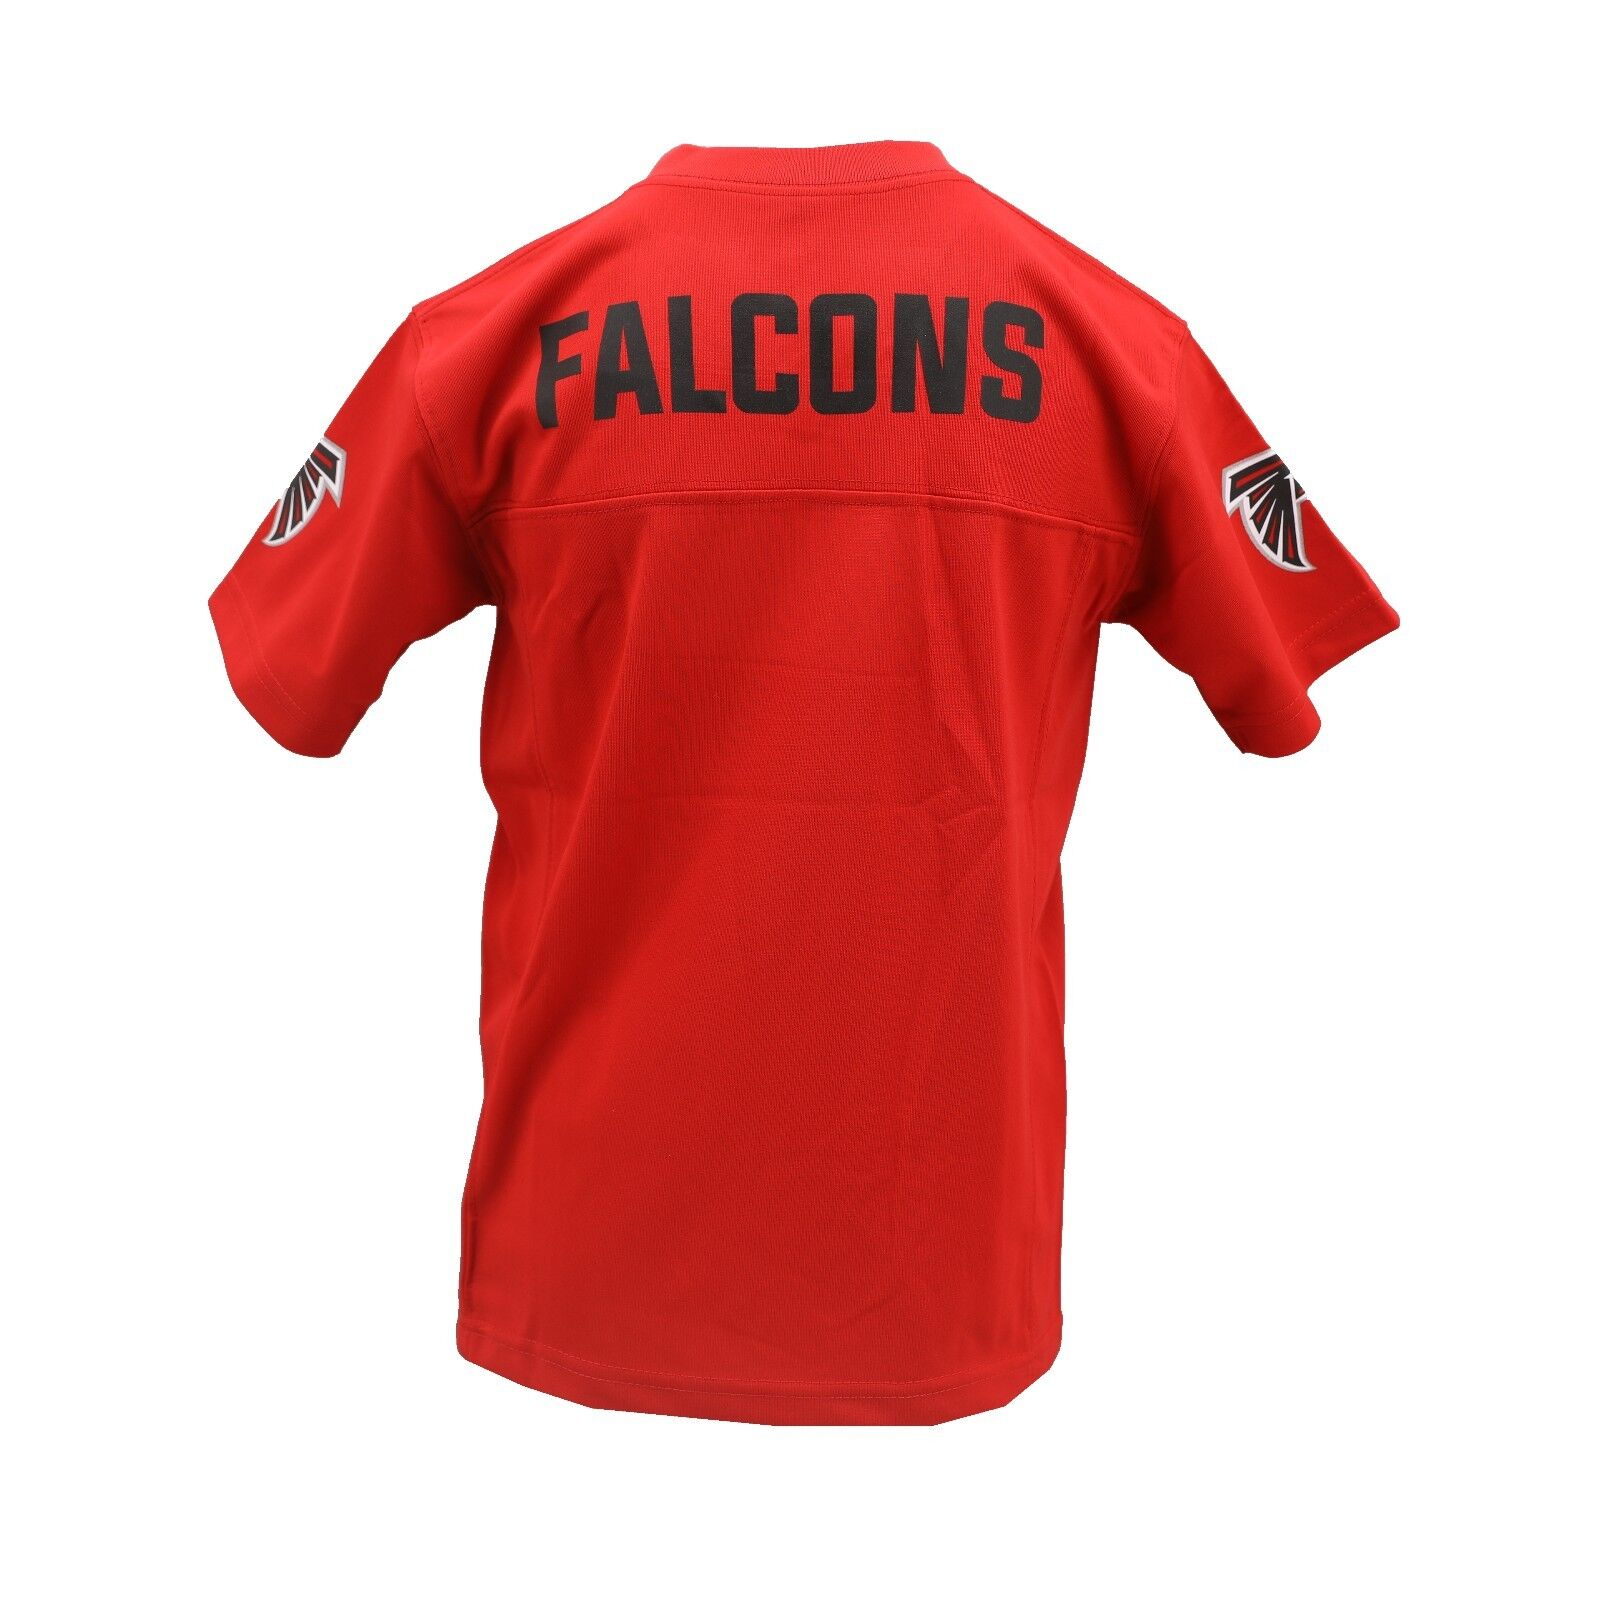 2a83c160 Details about Atlanta Falcons Official NFL Apparel Kids Youth Size  Distressed Jersey New Tags